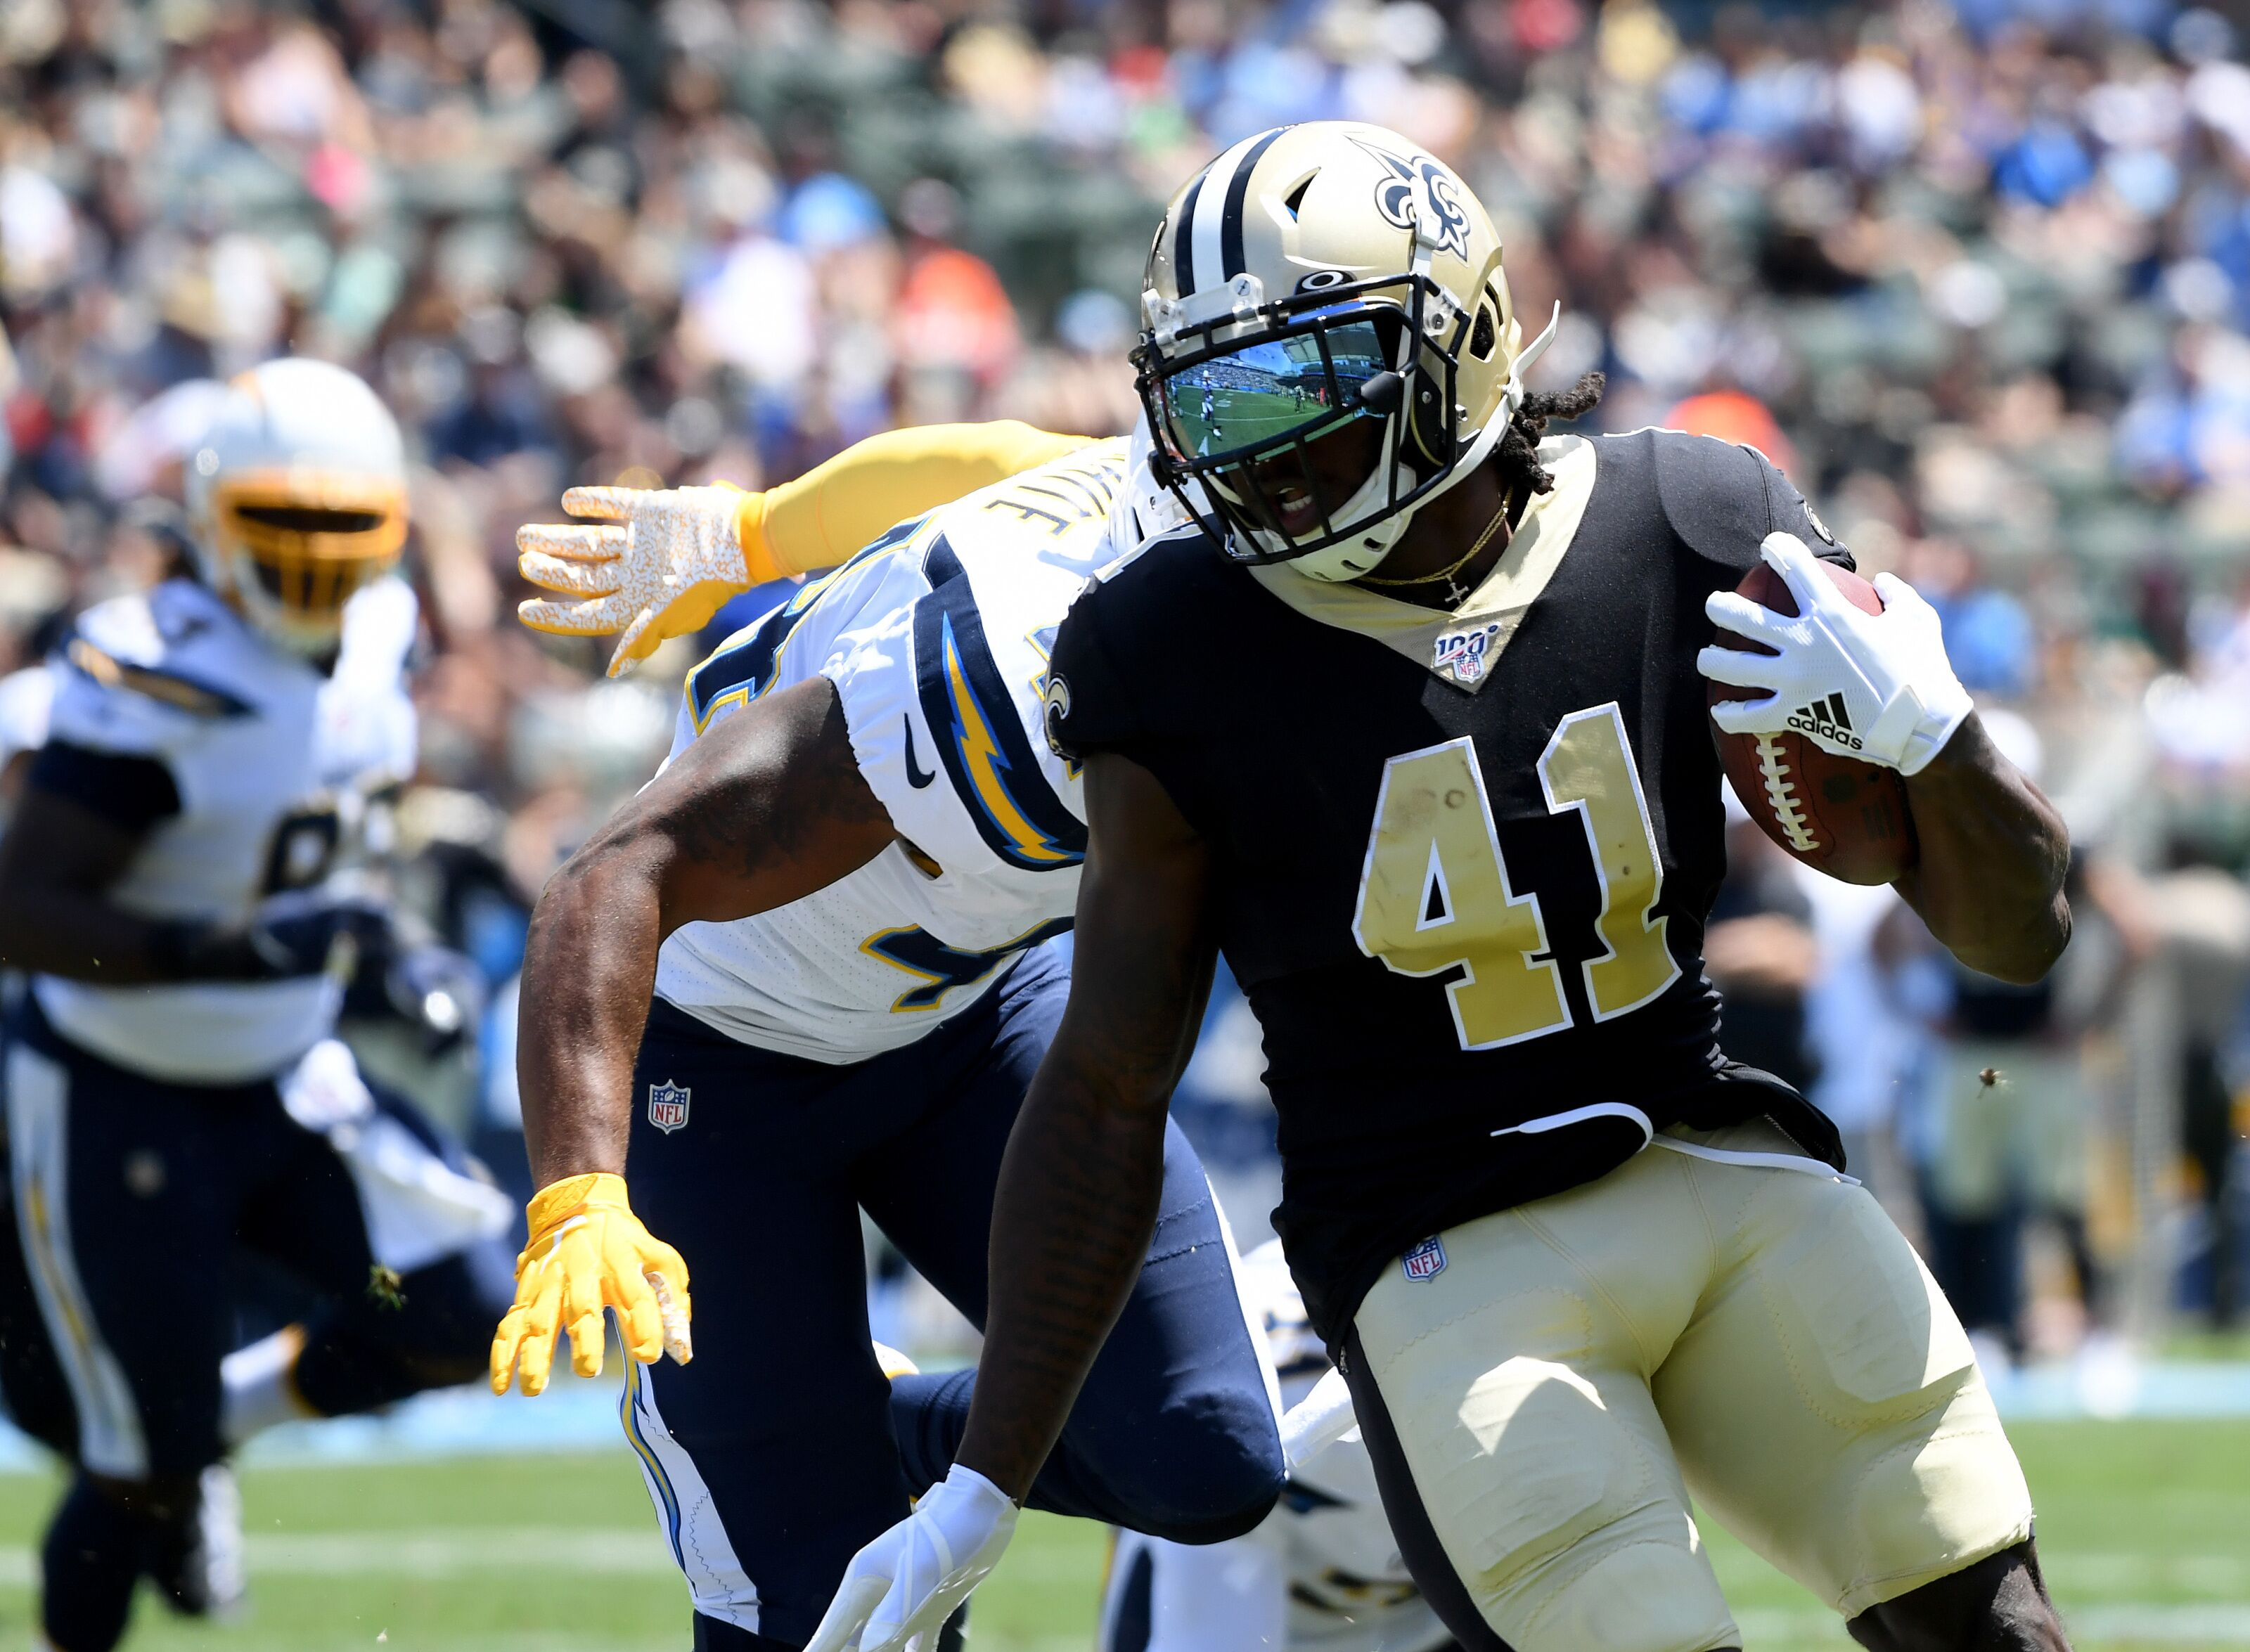 53 Saints: Finding the flavor post-Ingram, is Alvin Kamara enough spice?